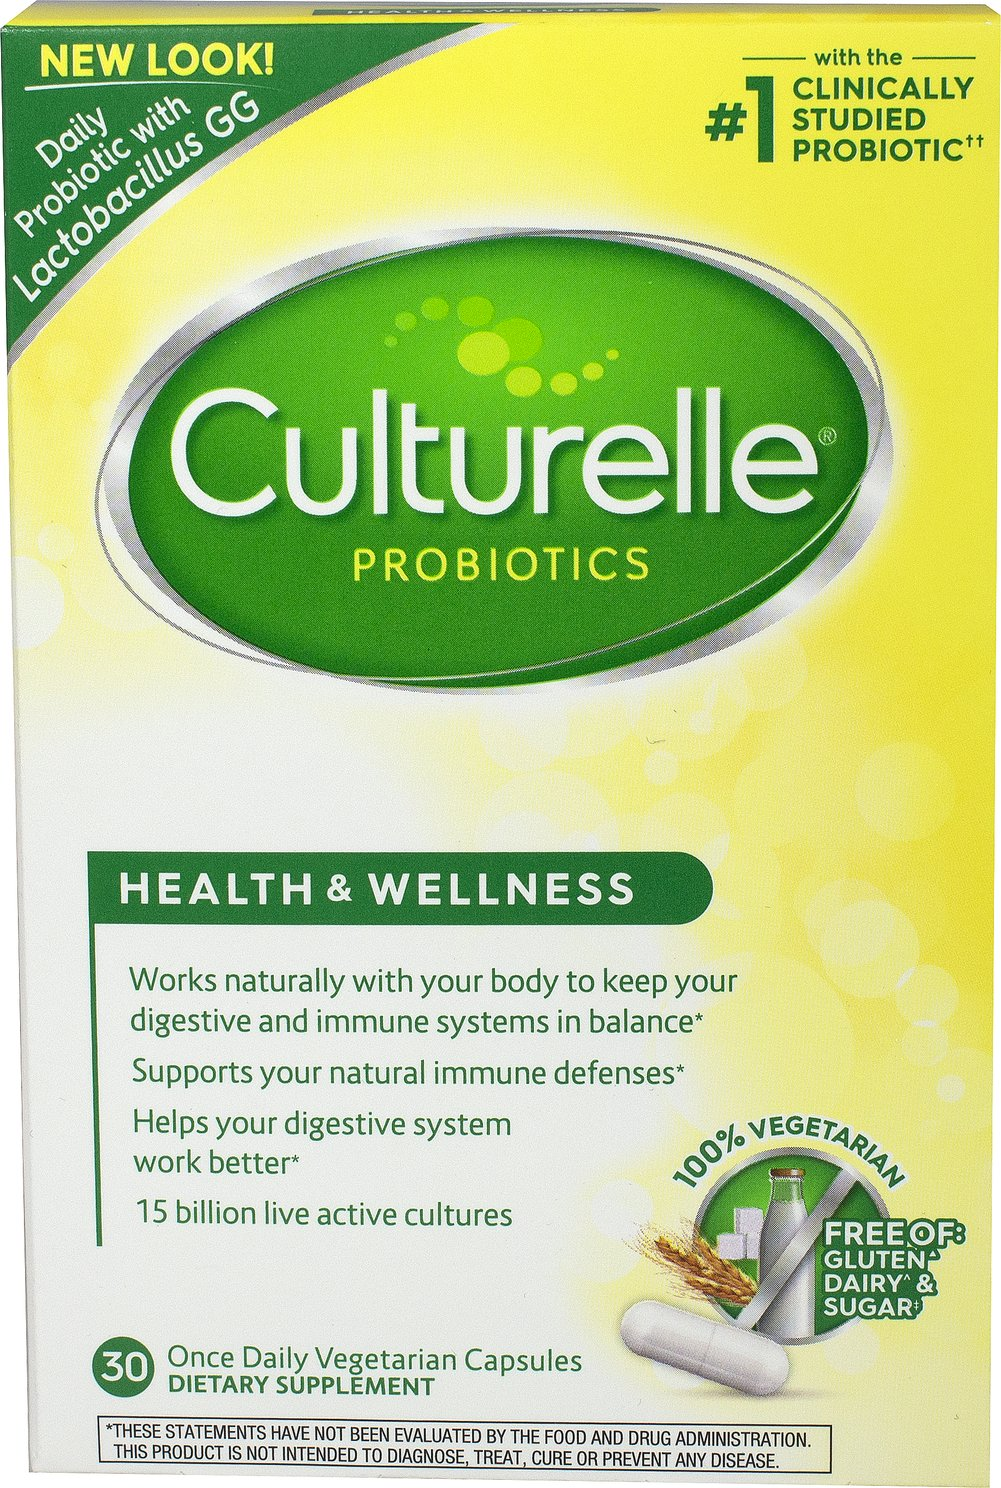 Culturelle® Probiotic <p><strong>From the Manufacturer's Label: </strong></p><p>Supports your healthy immune system**</p><p>Boosts digestion and overall digestive health**</p><p>Restores the natural balance of good bacteria in your digestive tract**</p> 30 Capsules 10 billion $20.99